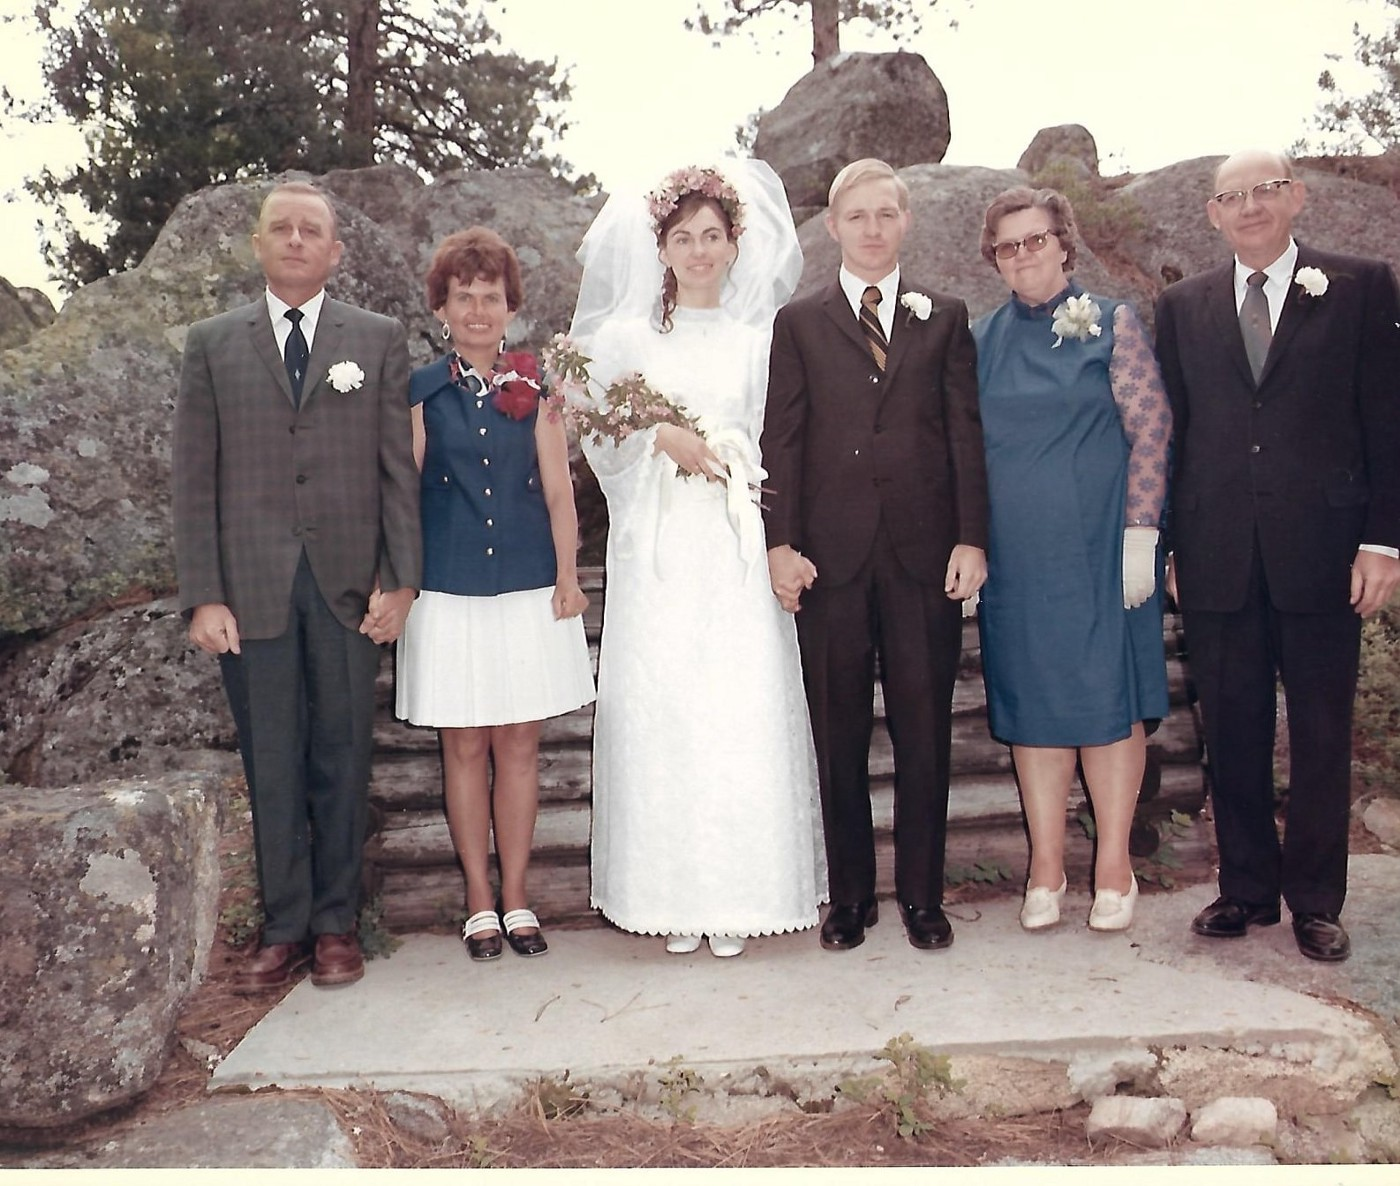 My parents wedding photo with my grandparents.